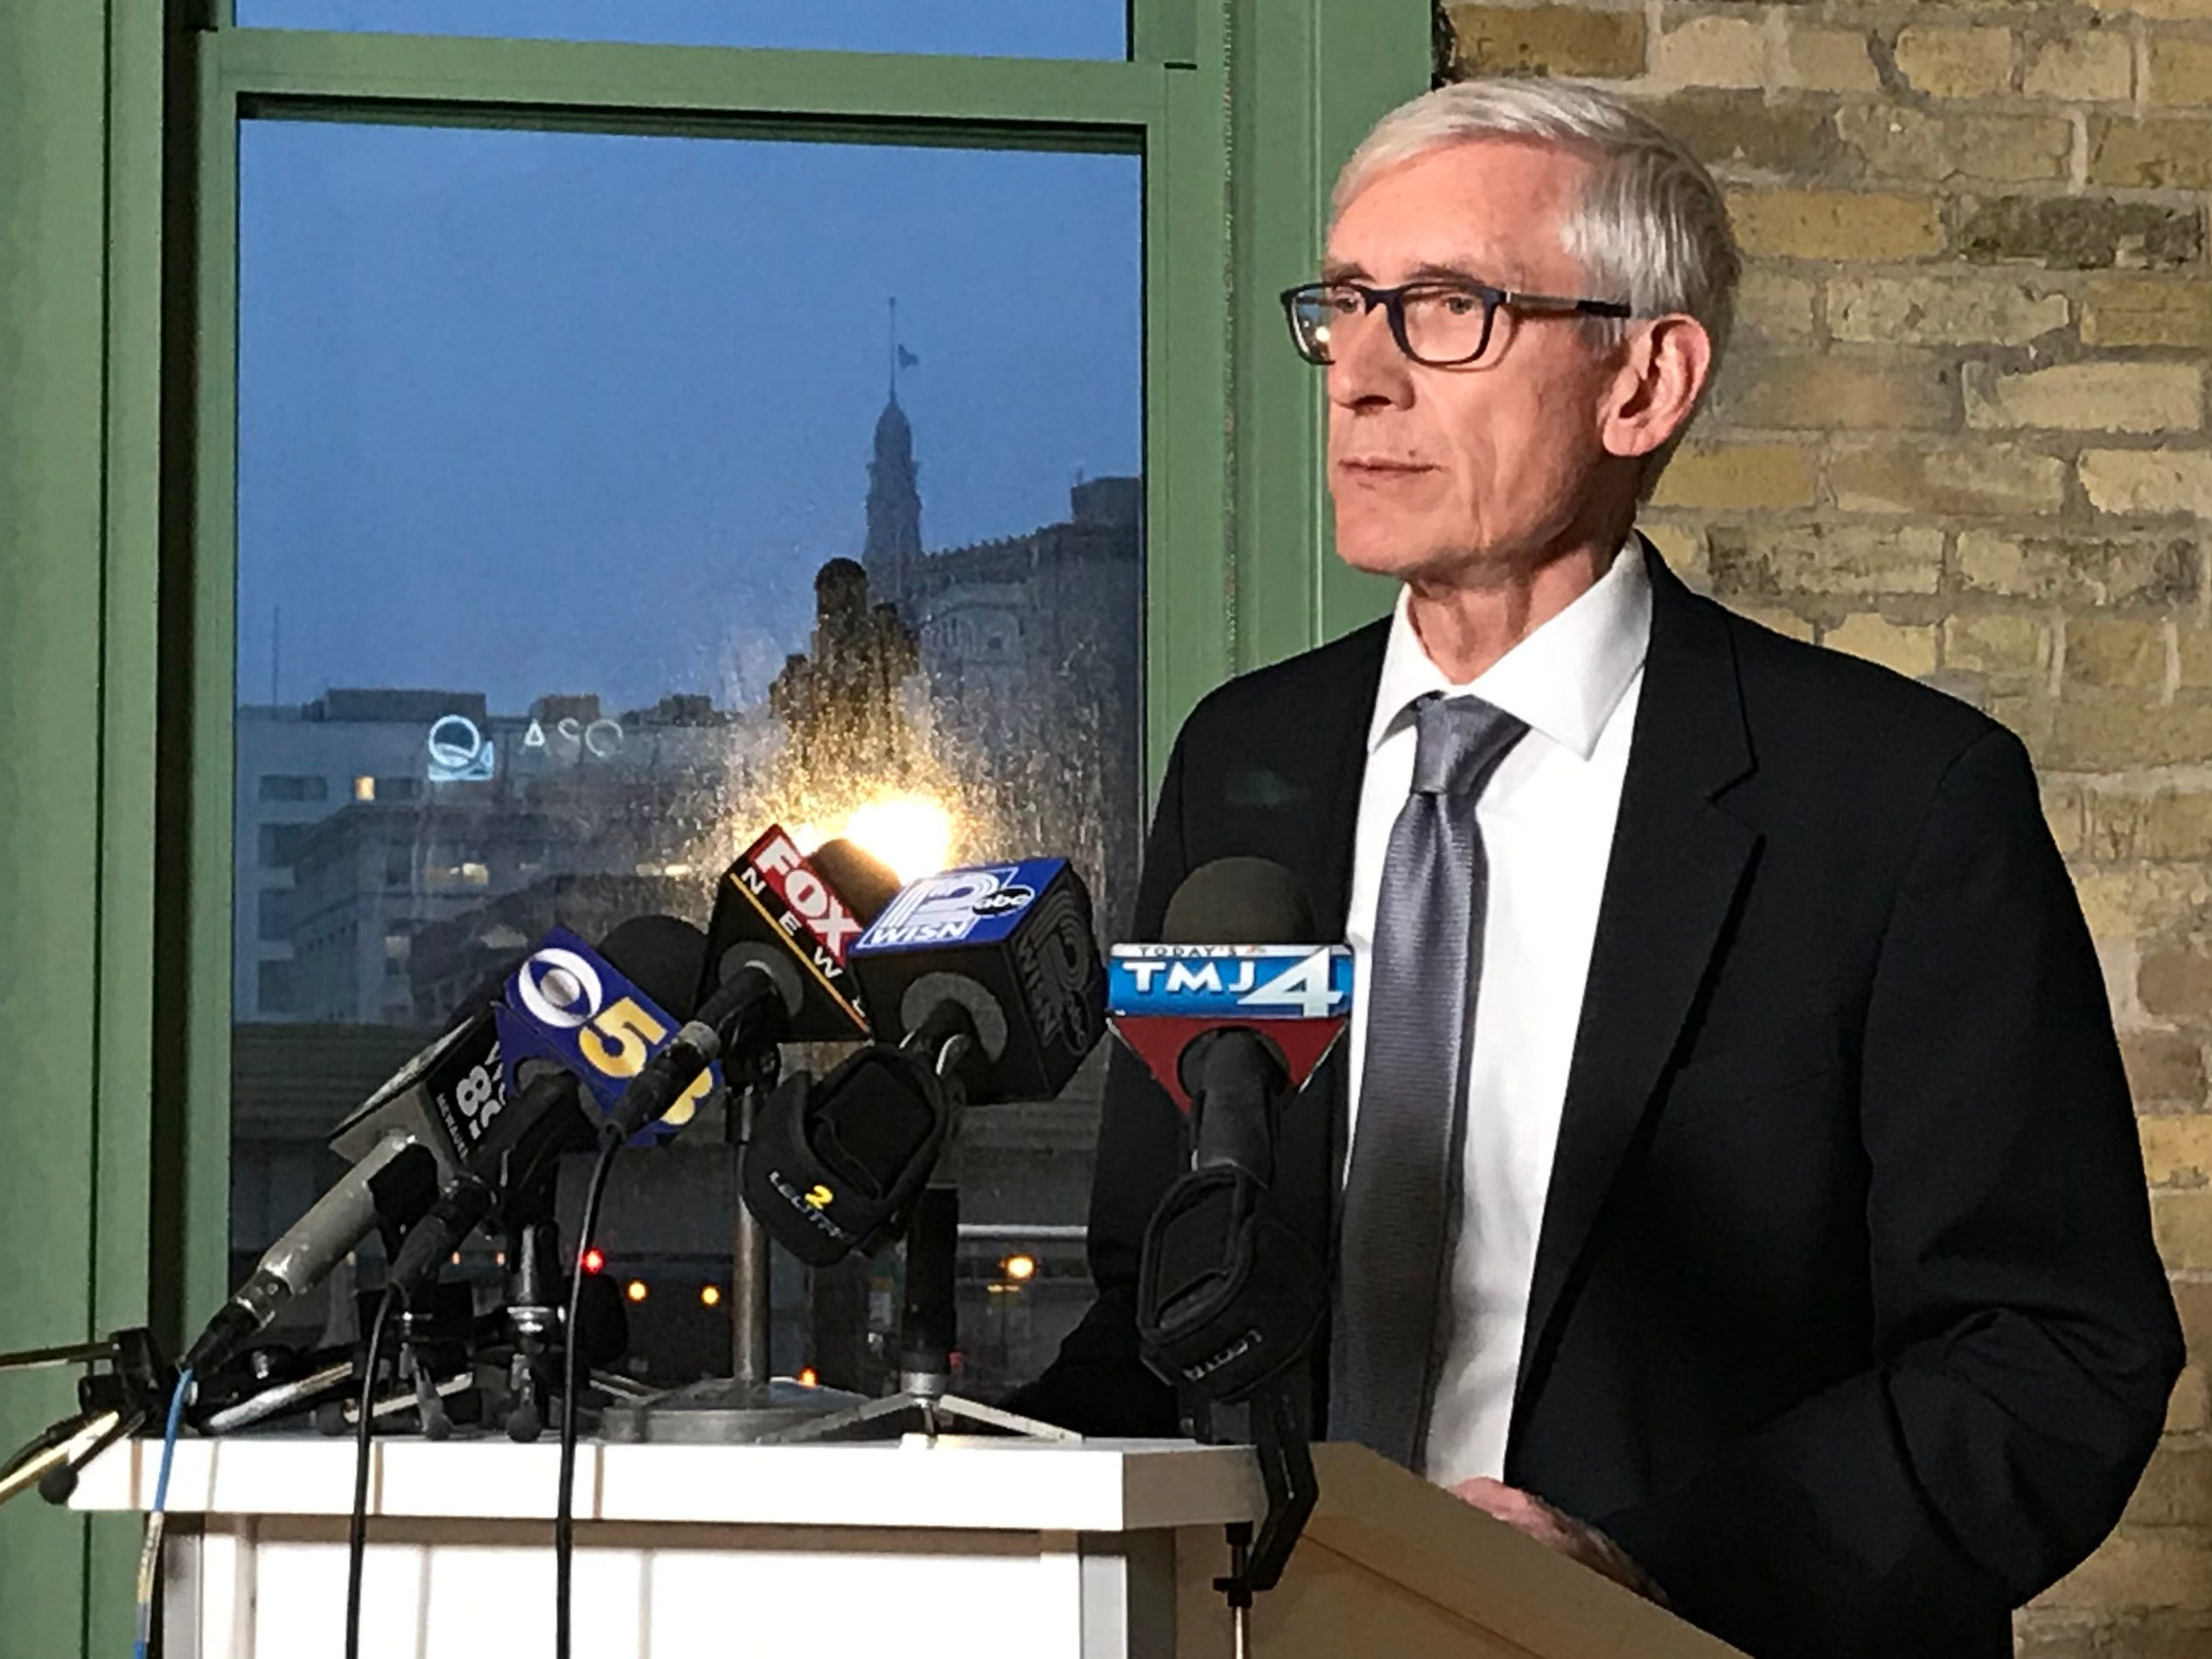 Tony Evers says it will take a lawsuit to get him to go along with lame-duck legislation